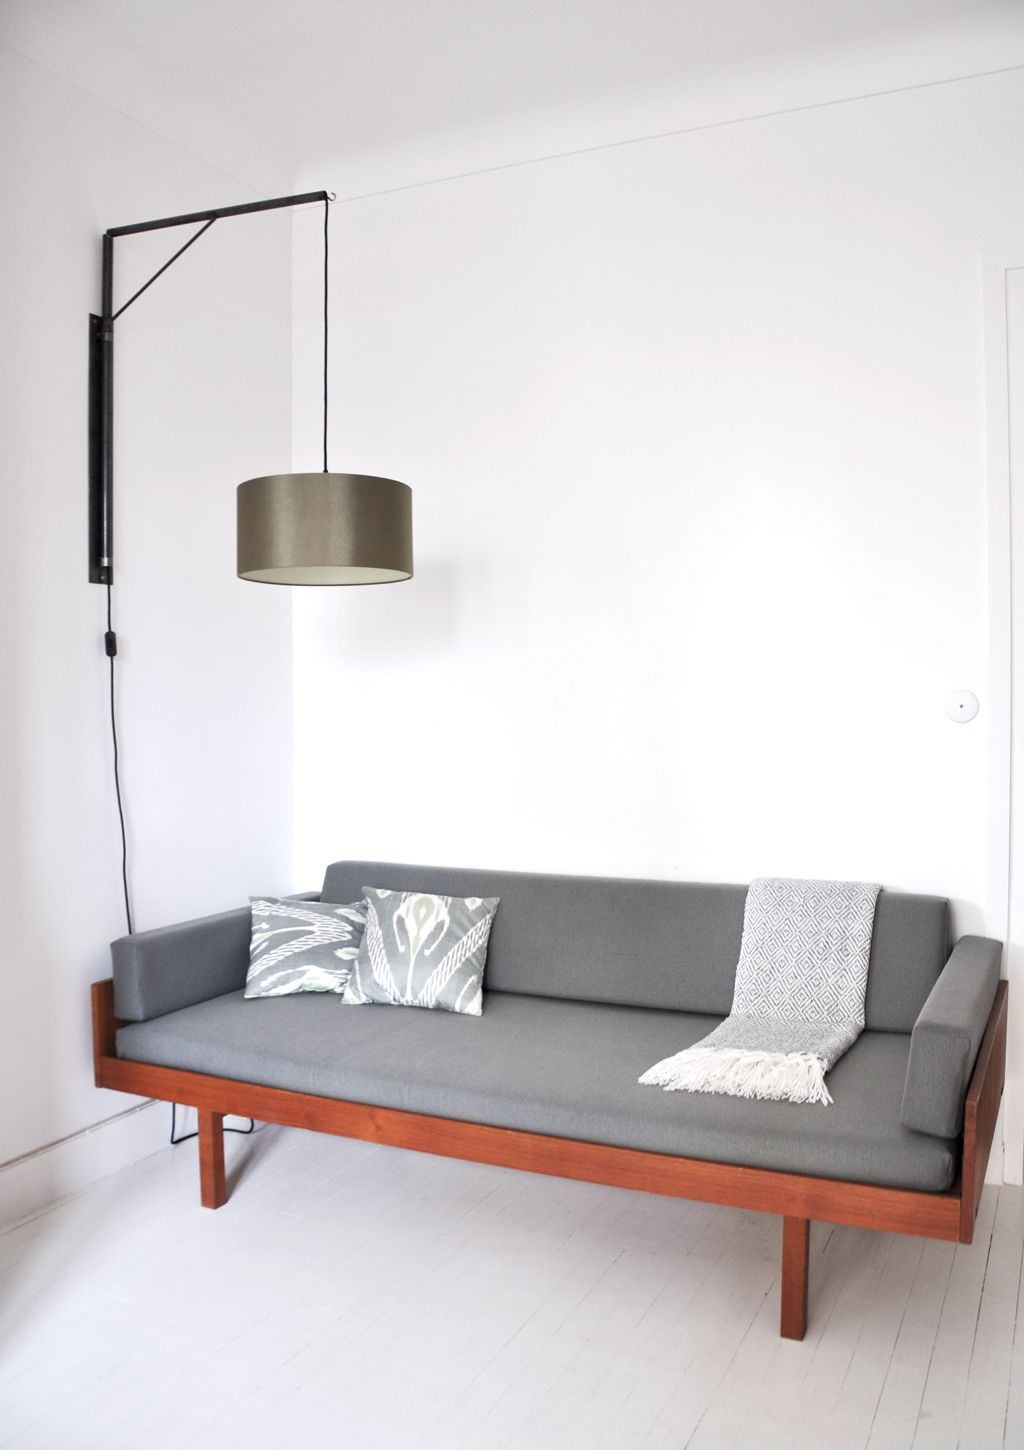 Daybed Horsnæs - Made in Denmark - Horsens - Design scandinave ...